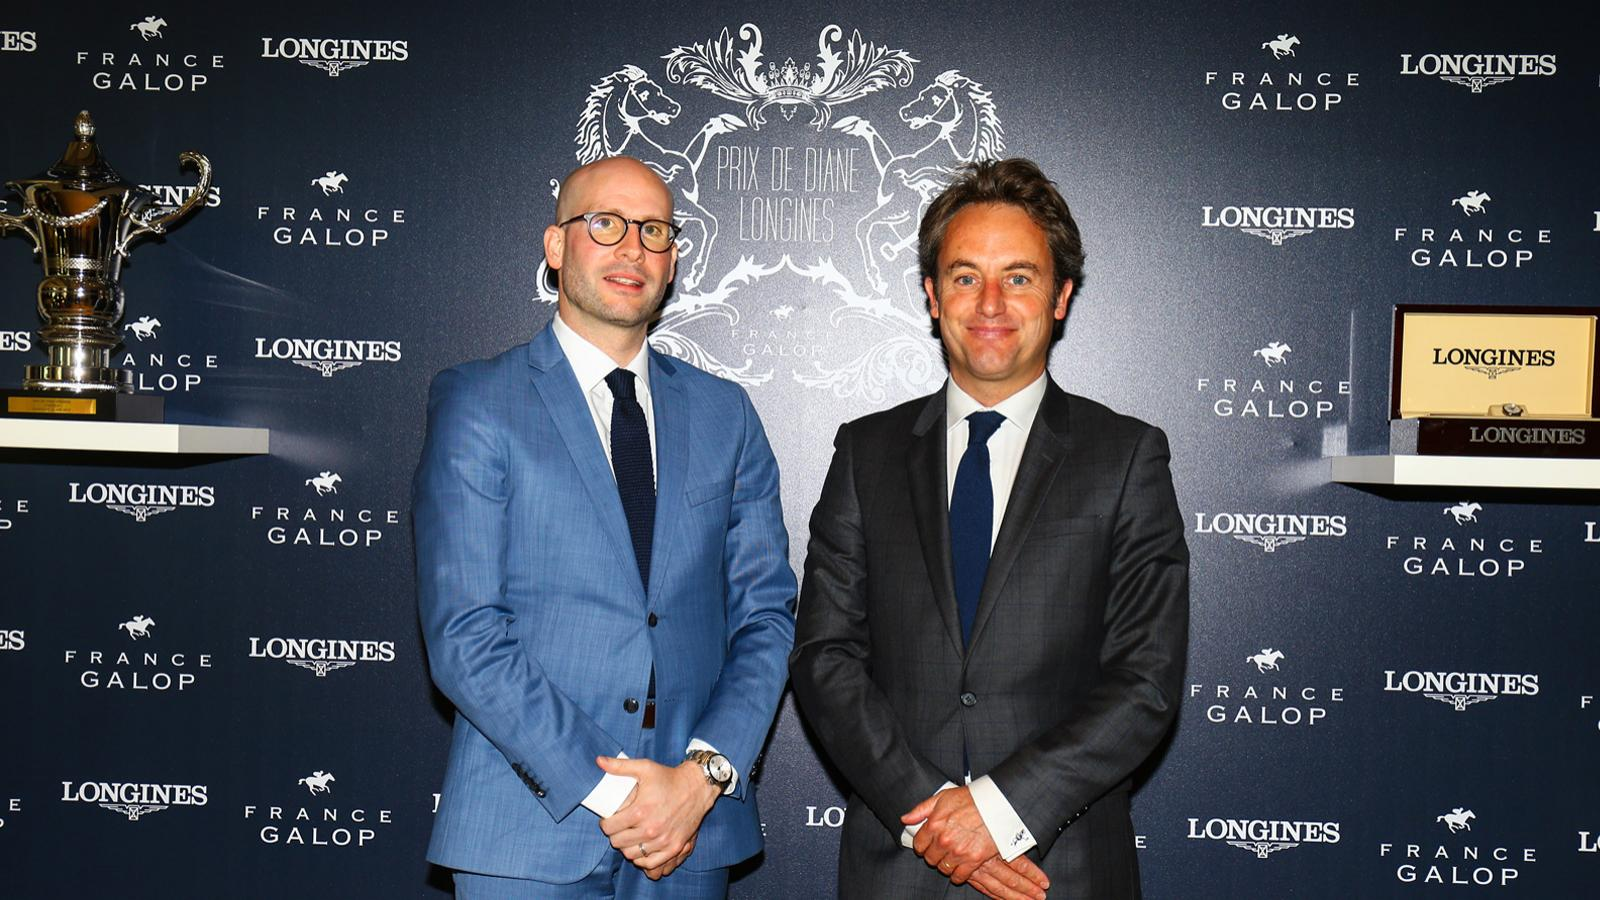 Simon Baker is back for the 2019 edition of the Prix de Diane Longines, the epitome of elegance